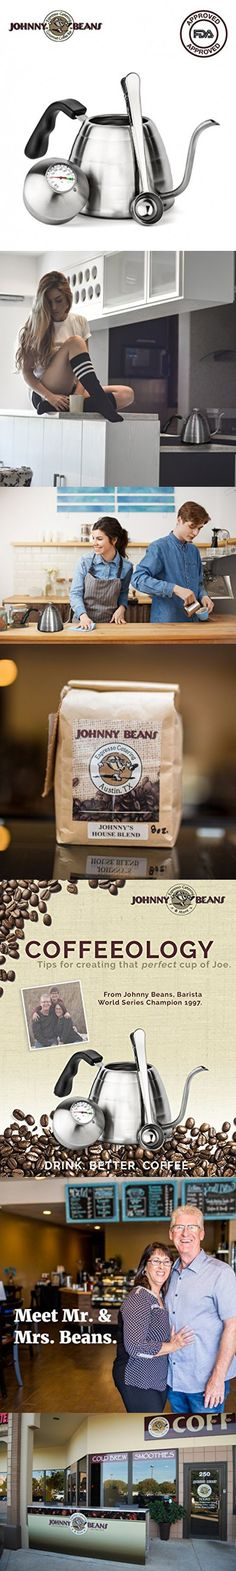 Pour Over Coffee Kettle - Gooseneck Spout and Built In Thermometer by Johnny Beans; Barista World Series Champion 1997! Johhny's Coffeeology Included!